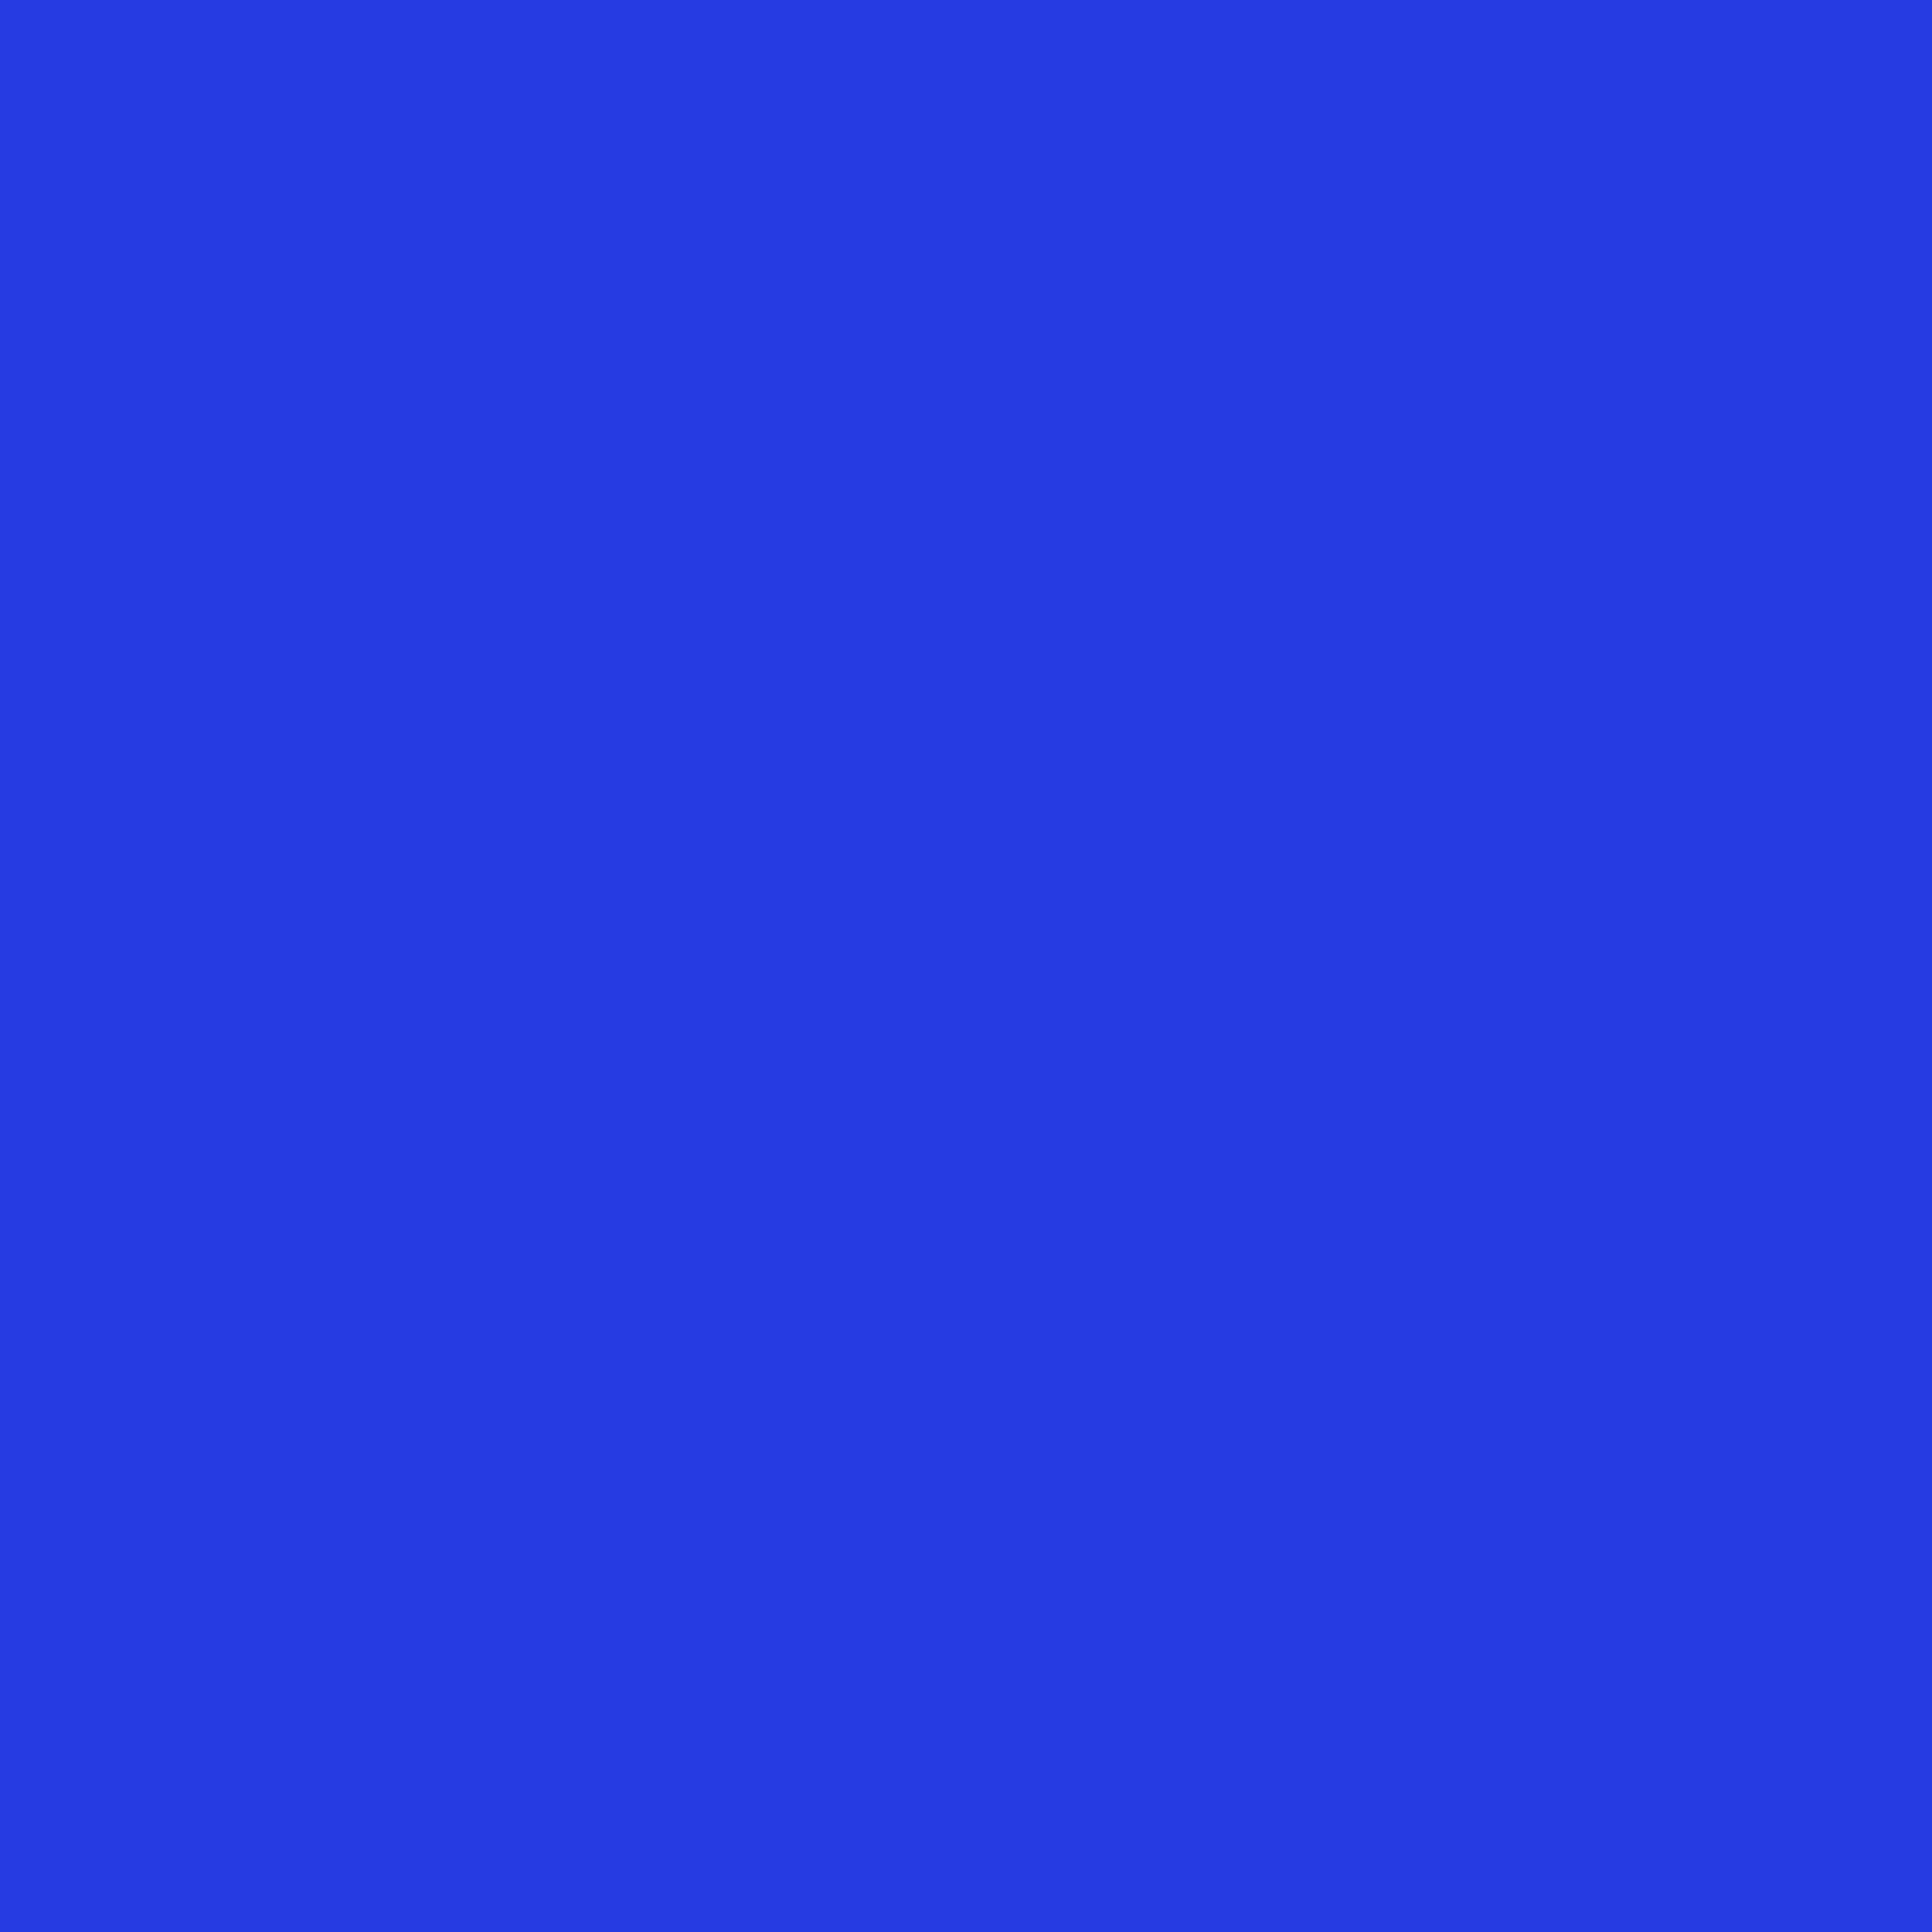 3600x3600 Palatinate Blue Solid Color Background